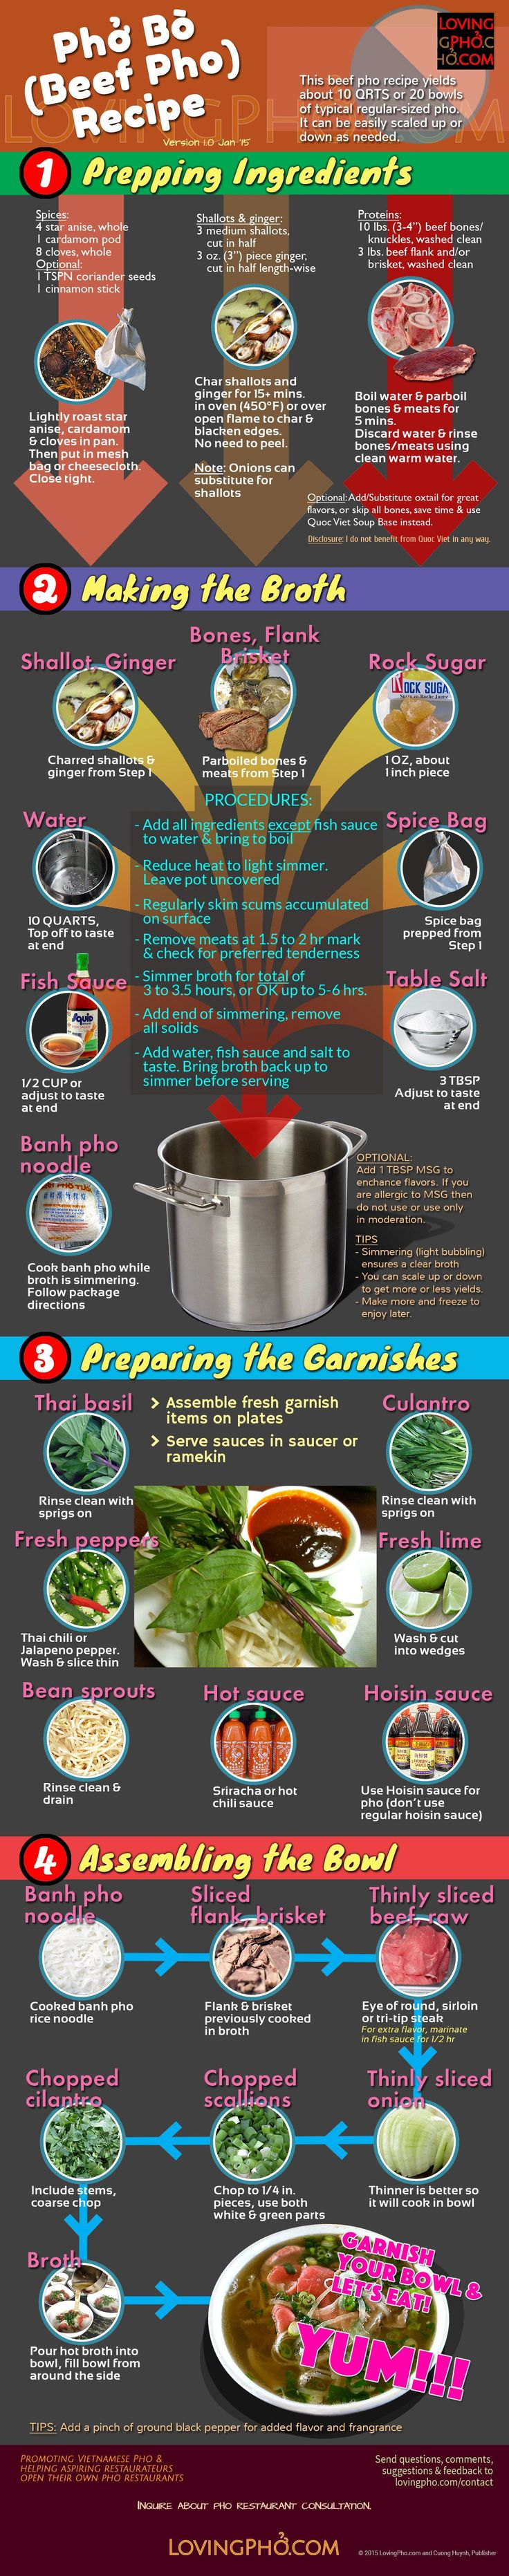 Pho bo recipe infographic by lovingpho.com. Right-click for high res image.